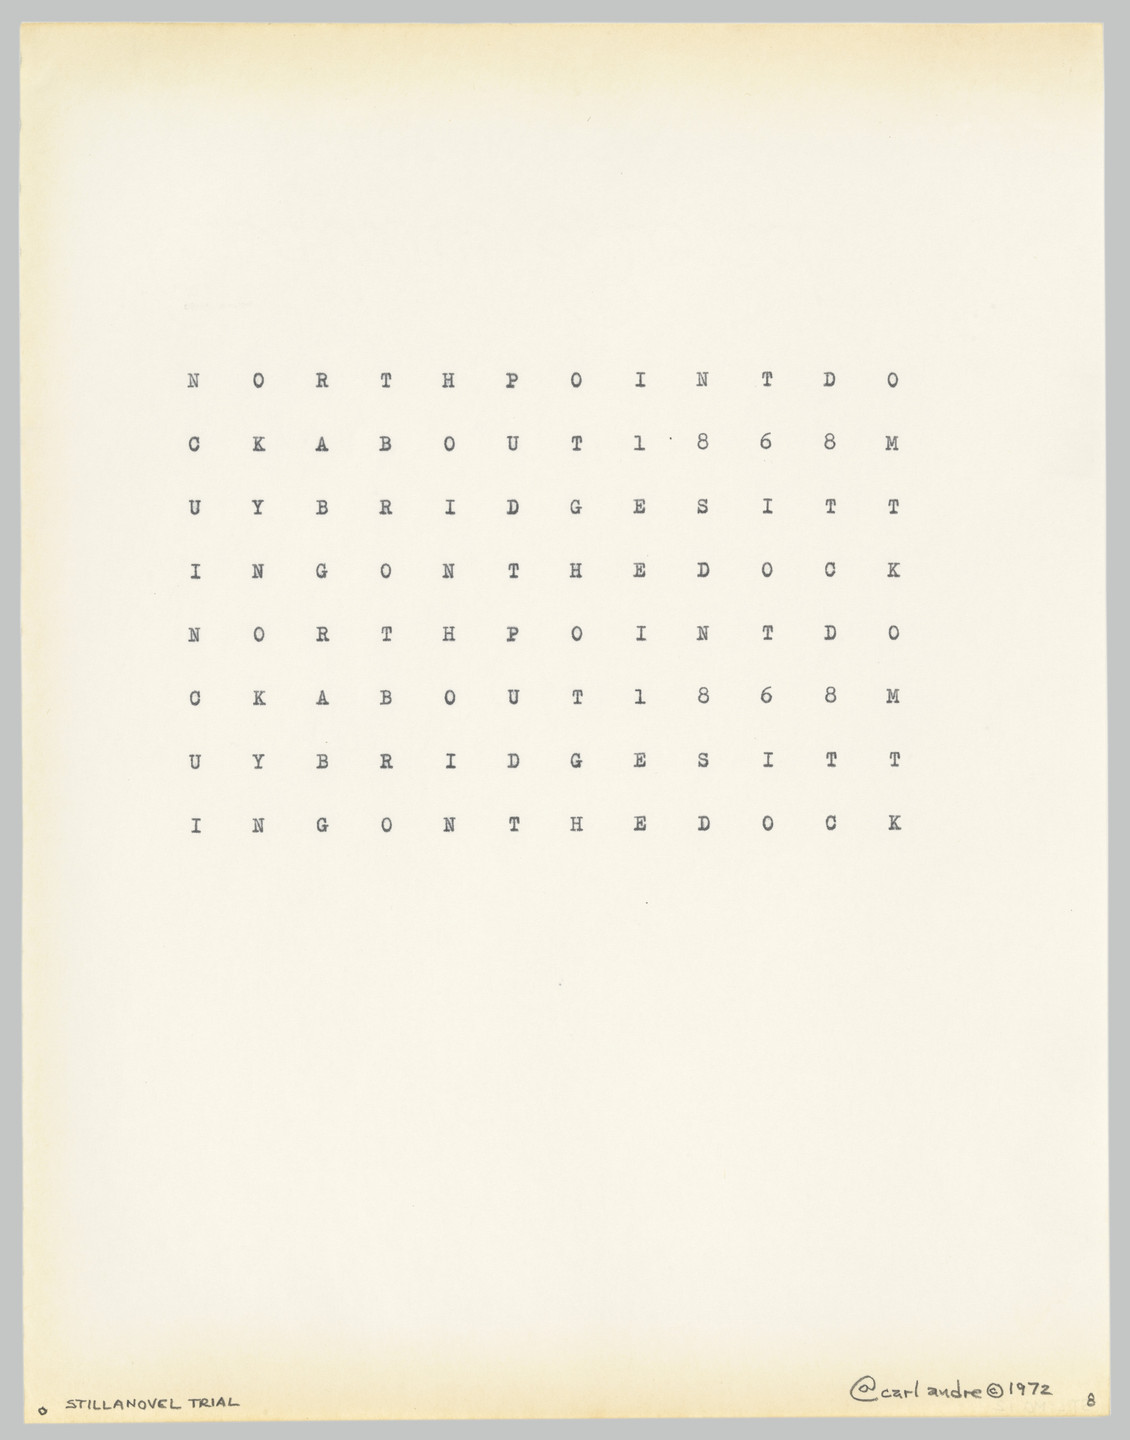 Carl Andre. Stillanovel Trial No. 8. 1972